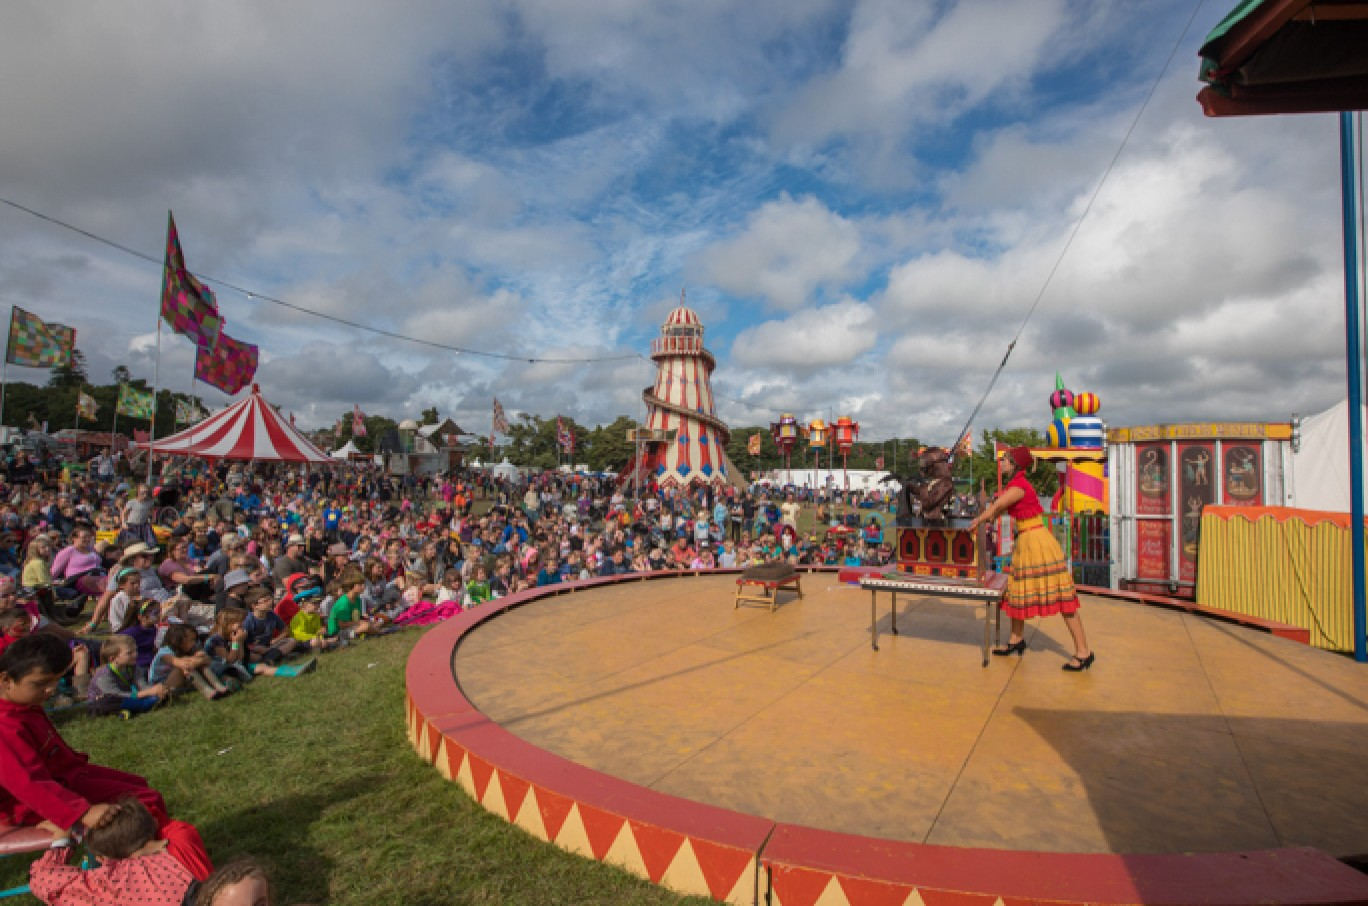 6_63-camp-bestival-2017-kids-area-vf-vic_69511501585031